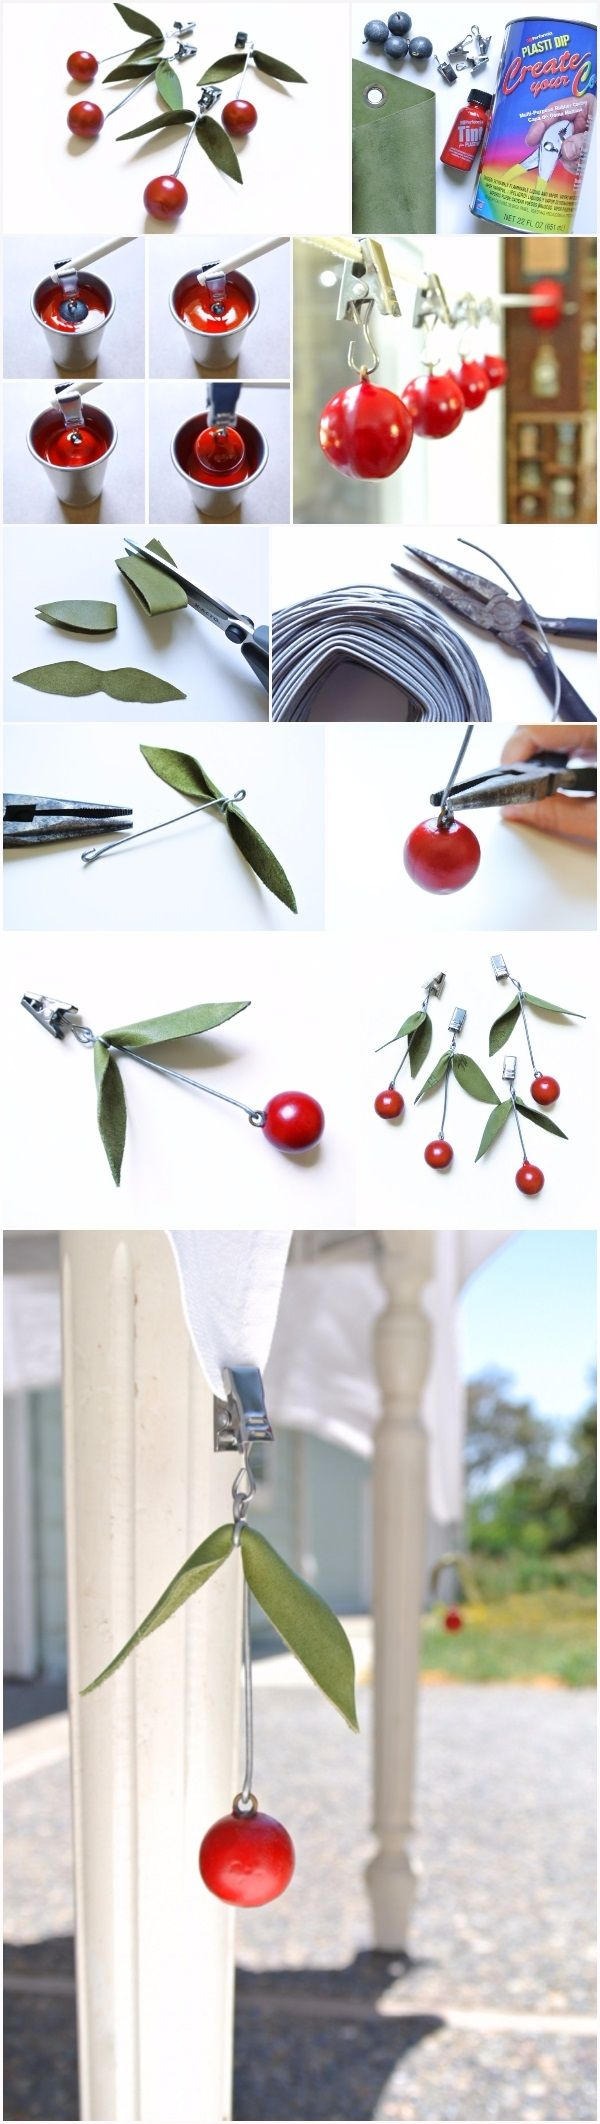 Summer Cherries Tablecloth Weights | DIY Fun Tips                                                                                                                                                                                 More